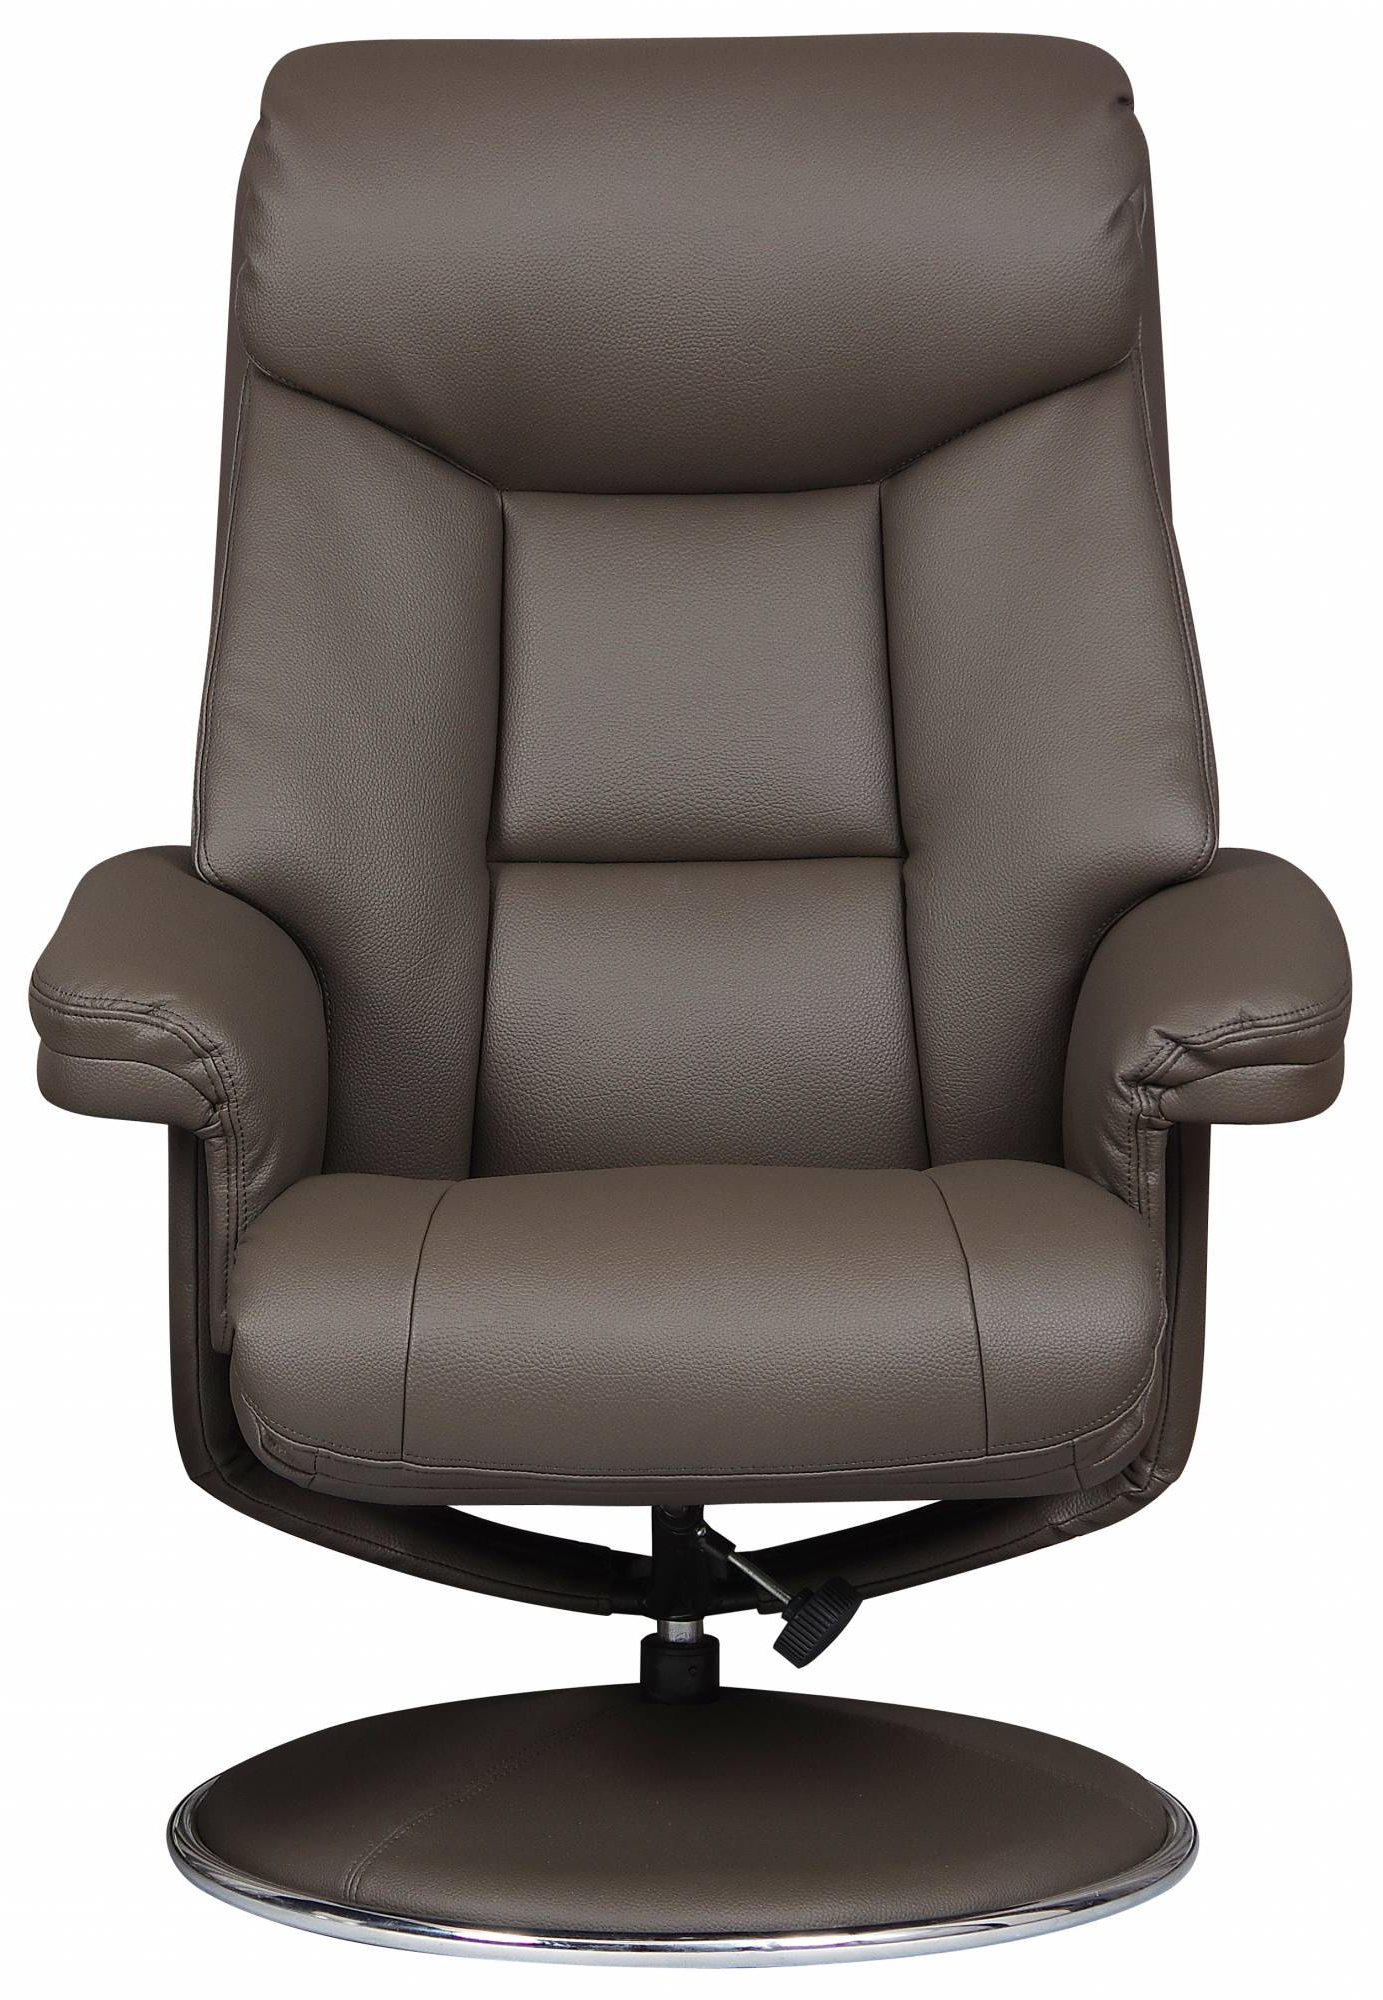 Toulouse – Swivel Recliner Chair & Footstool Charcoal Faux Leather Pertaining To Well Known Charcoal Swivel Chairs (View 18 of 20)